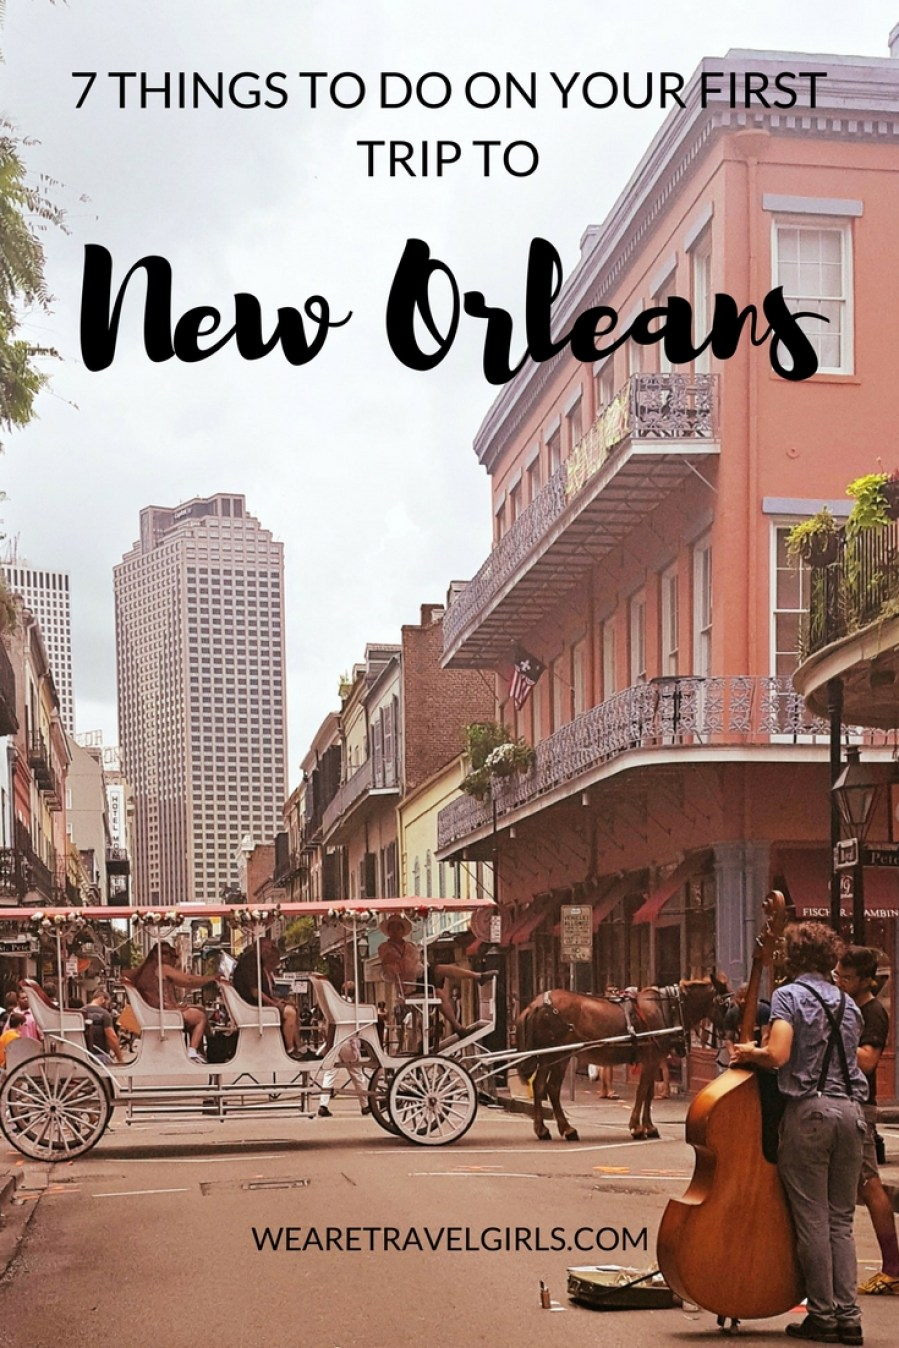 7 Things To Do On Your First Trip To New Orleans